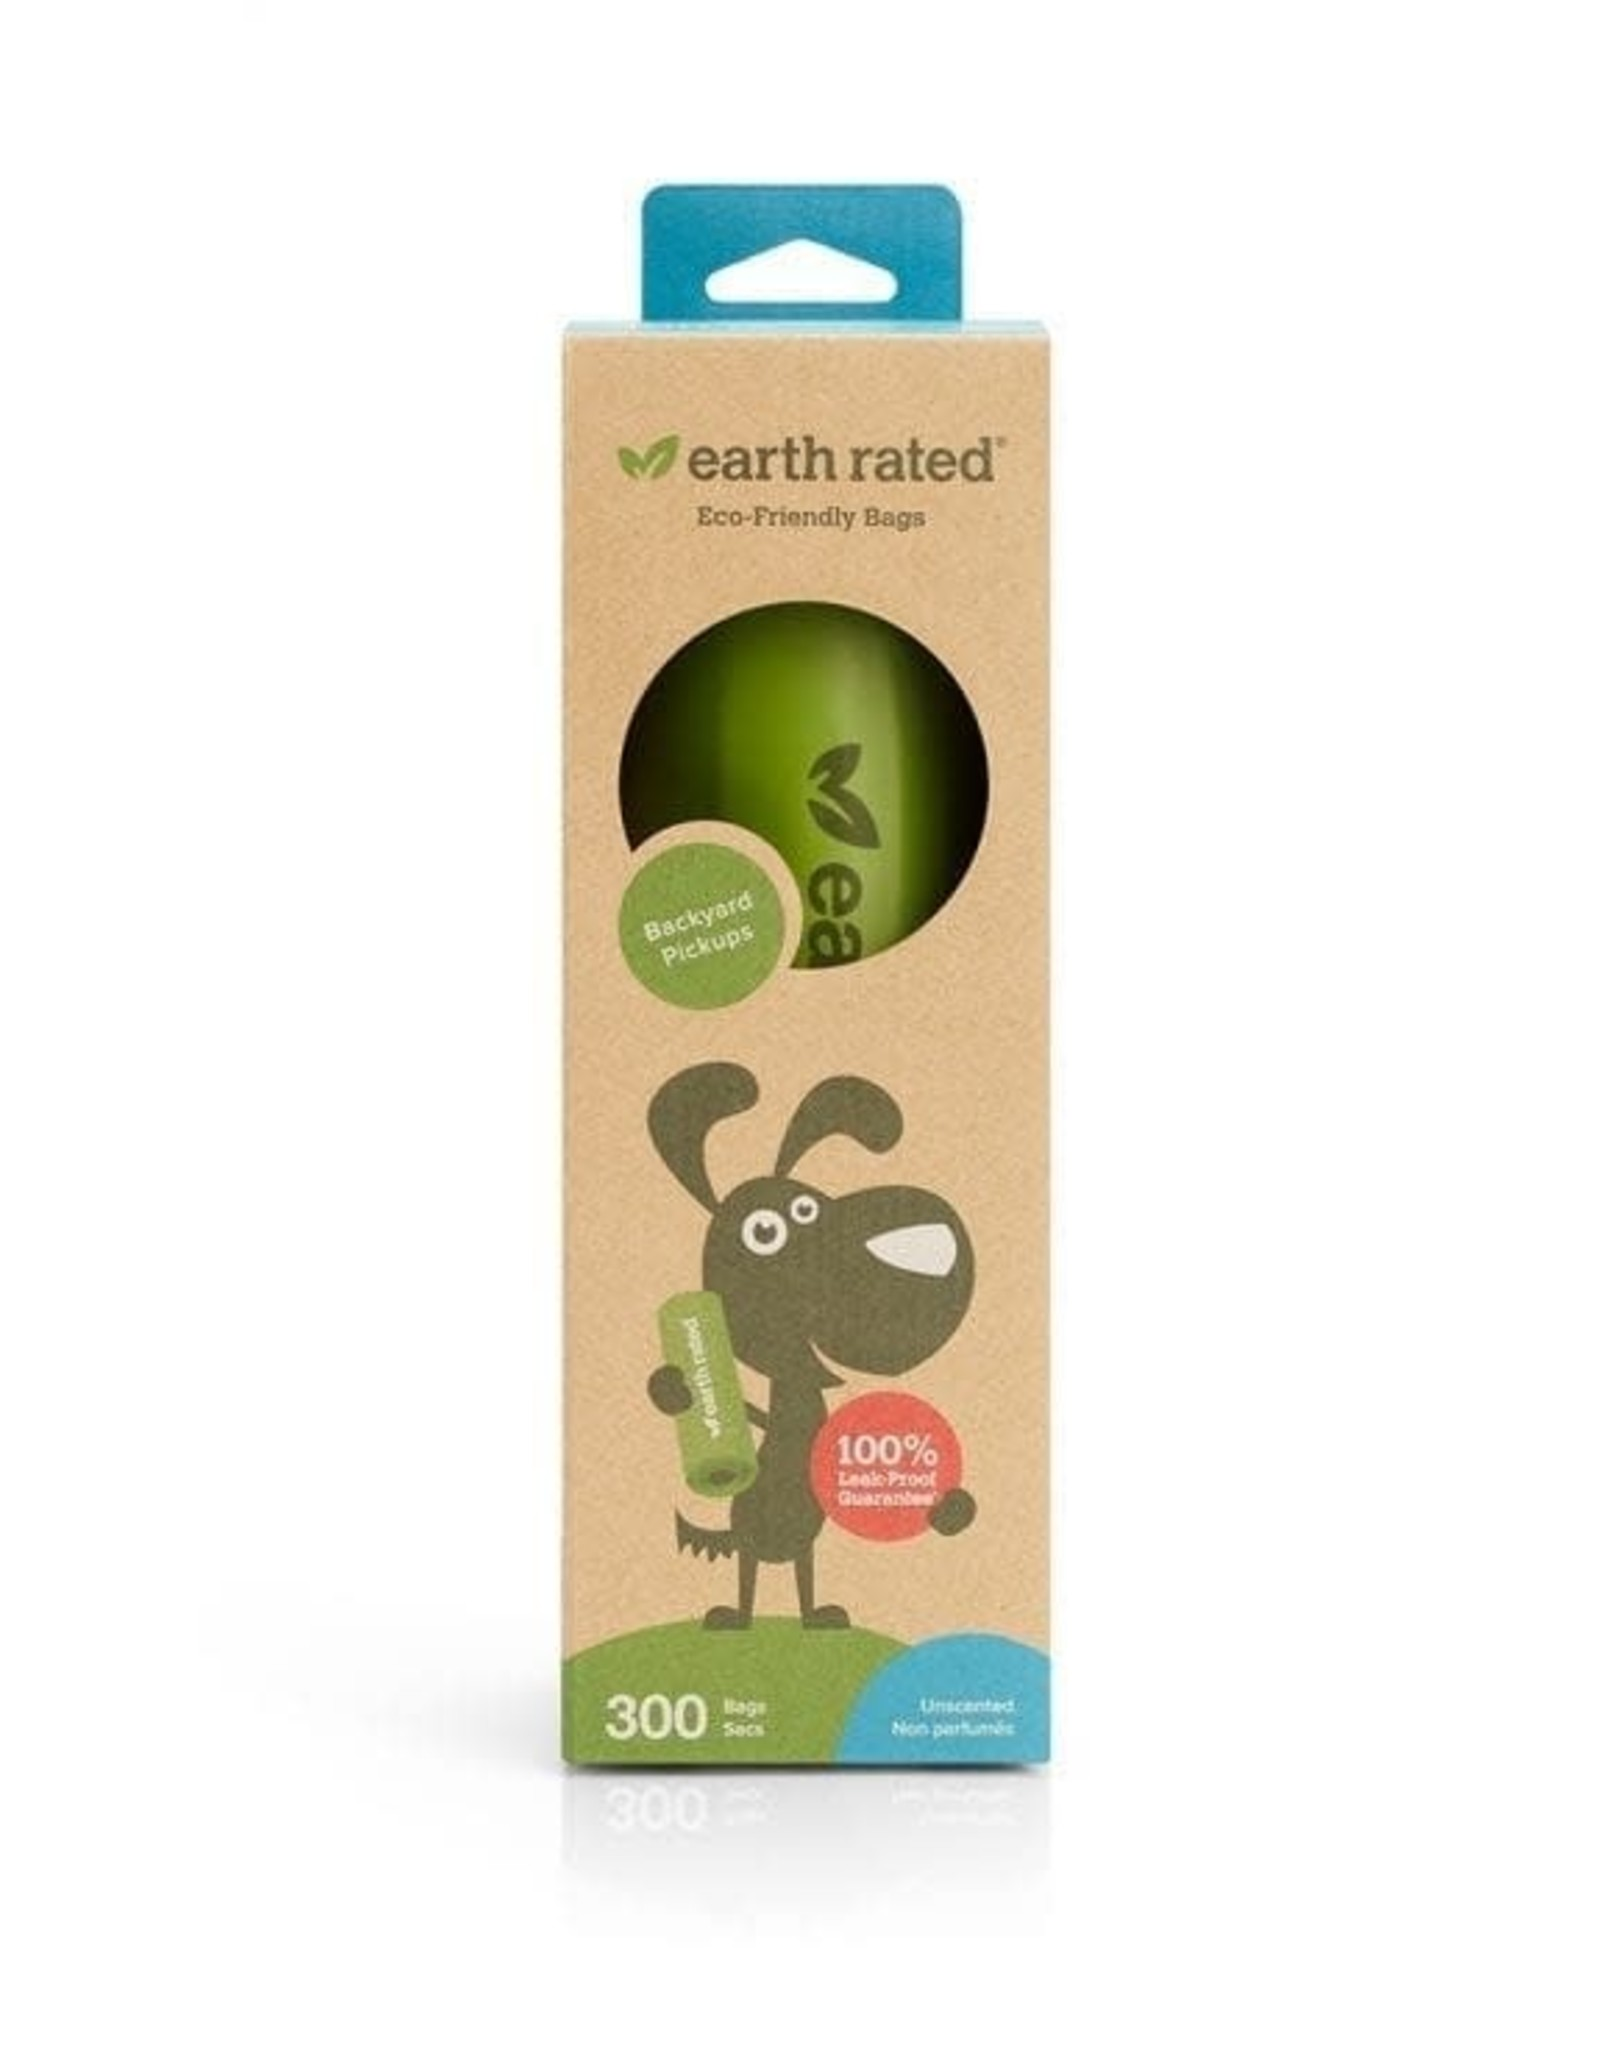 Earth Rated Earth Rated Backyard Pickup Poop Bags - 300 bags